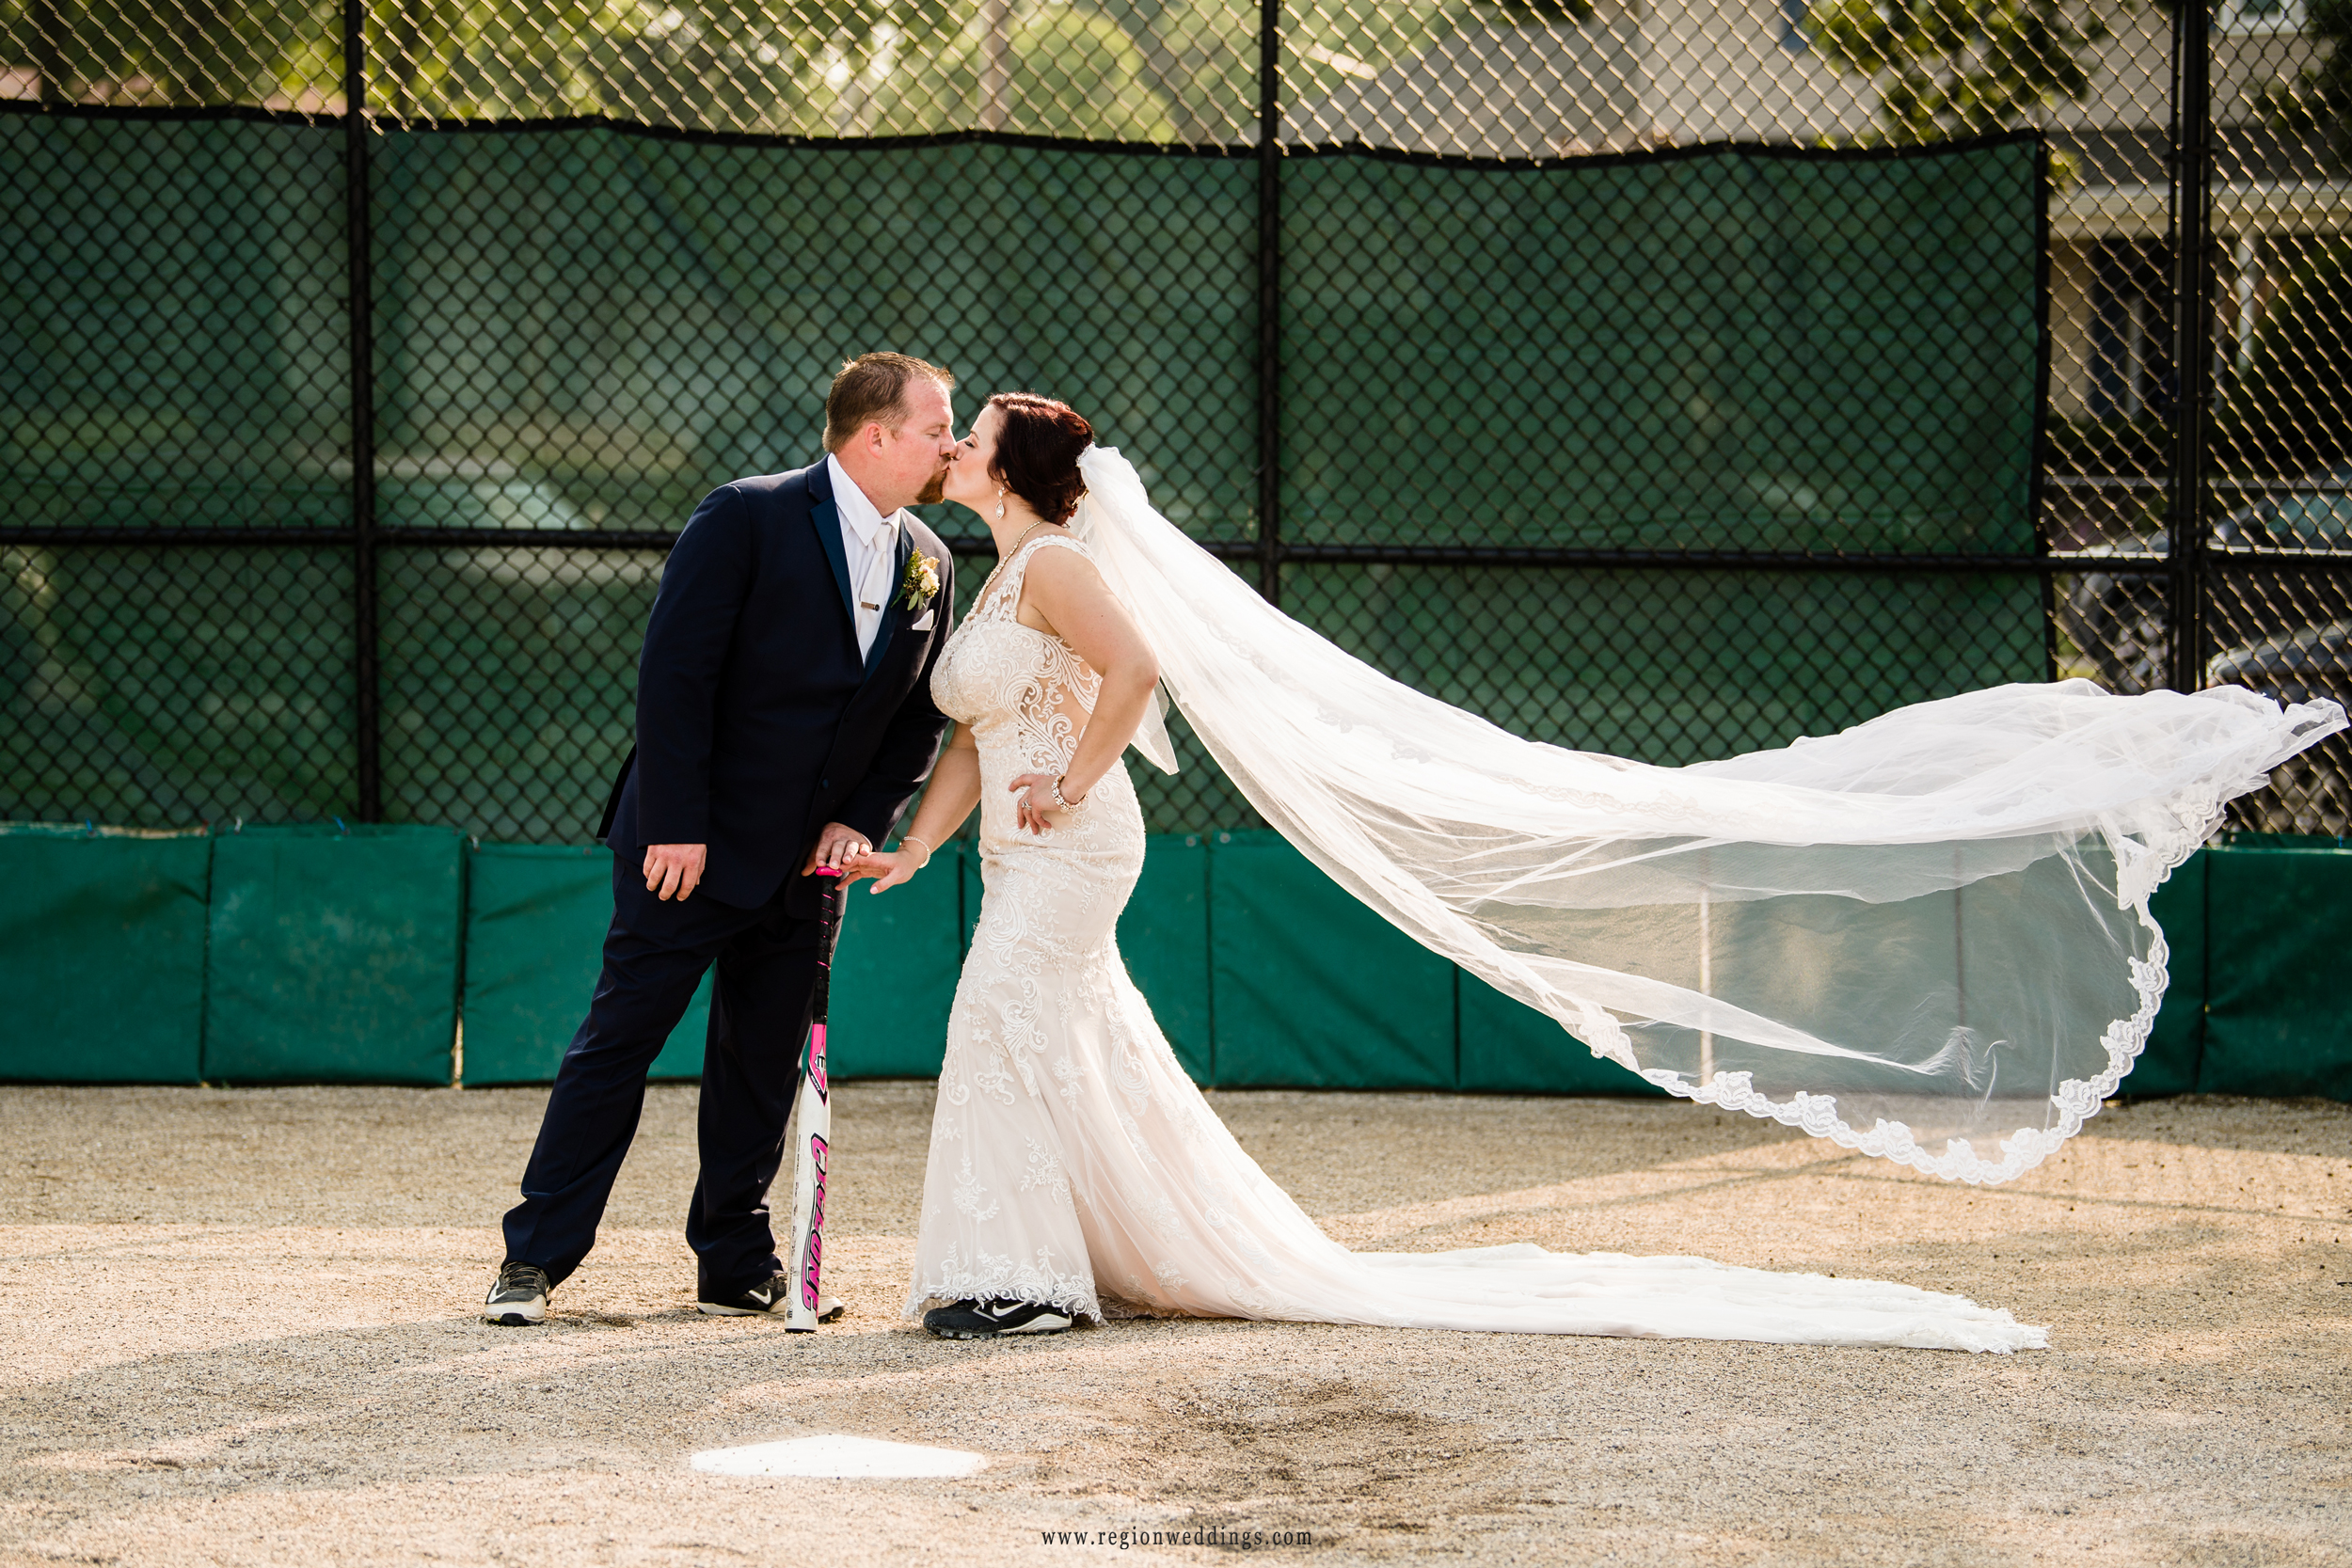 The bride's veil flies in the wind as she kisses her groom at home plate.